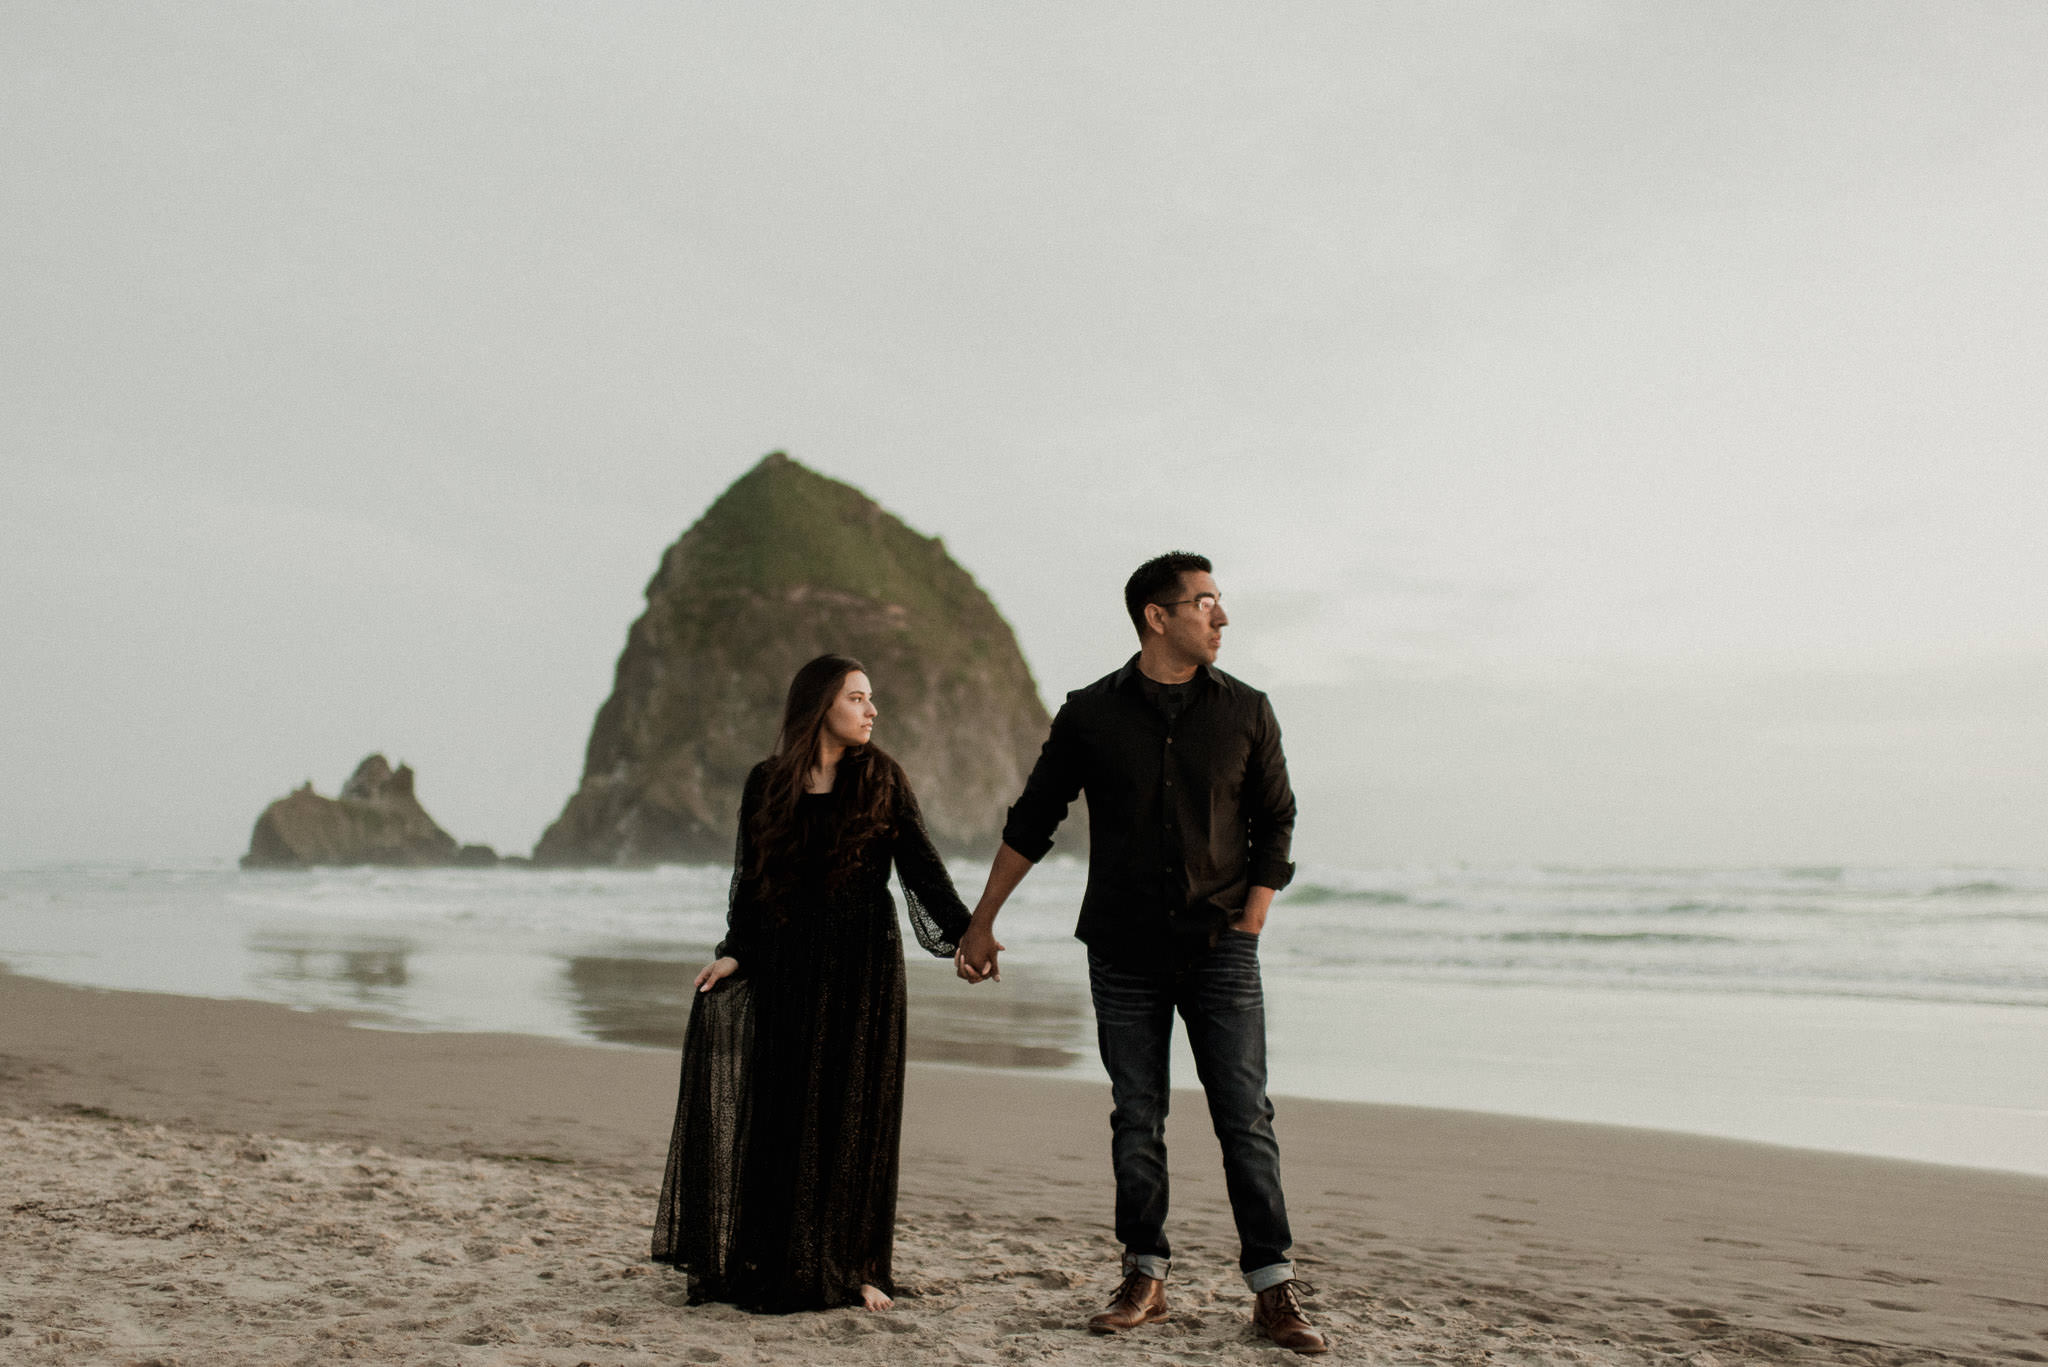 oregon-cannon-beach-ecola-park-adventure-destination-houston-engagement-photographer-sm-5.jpg